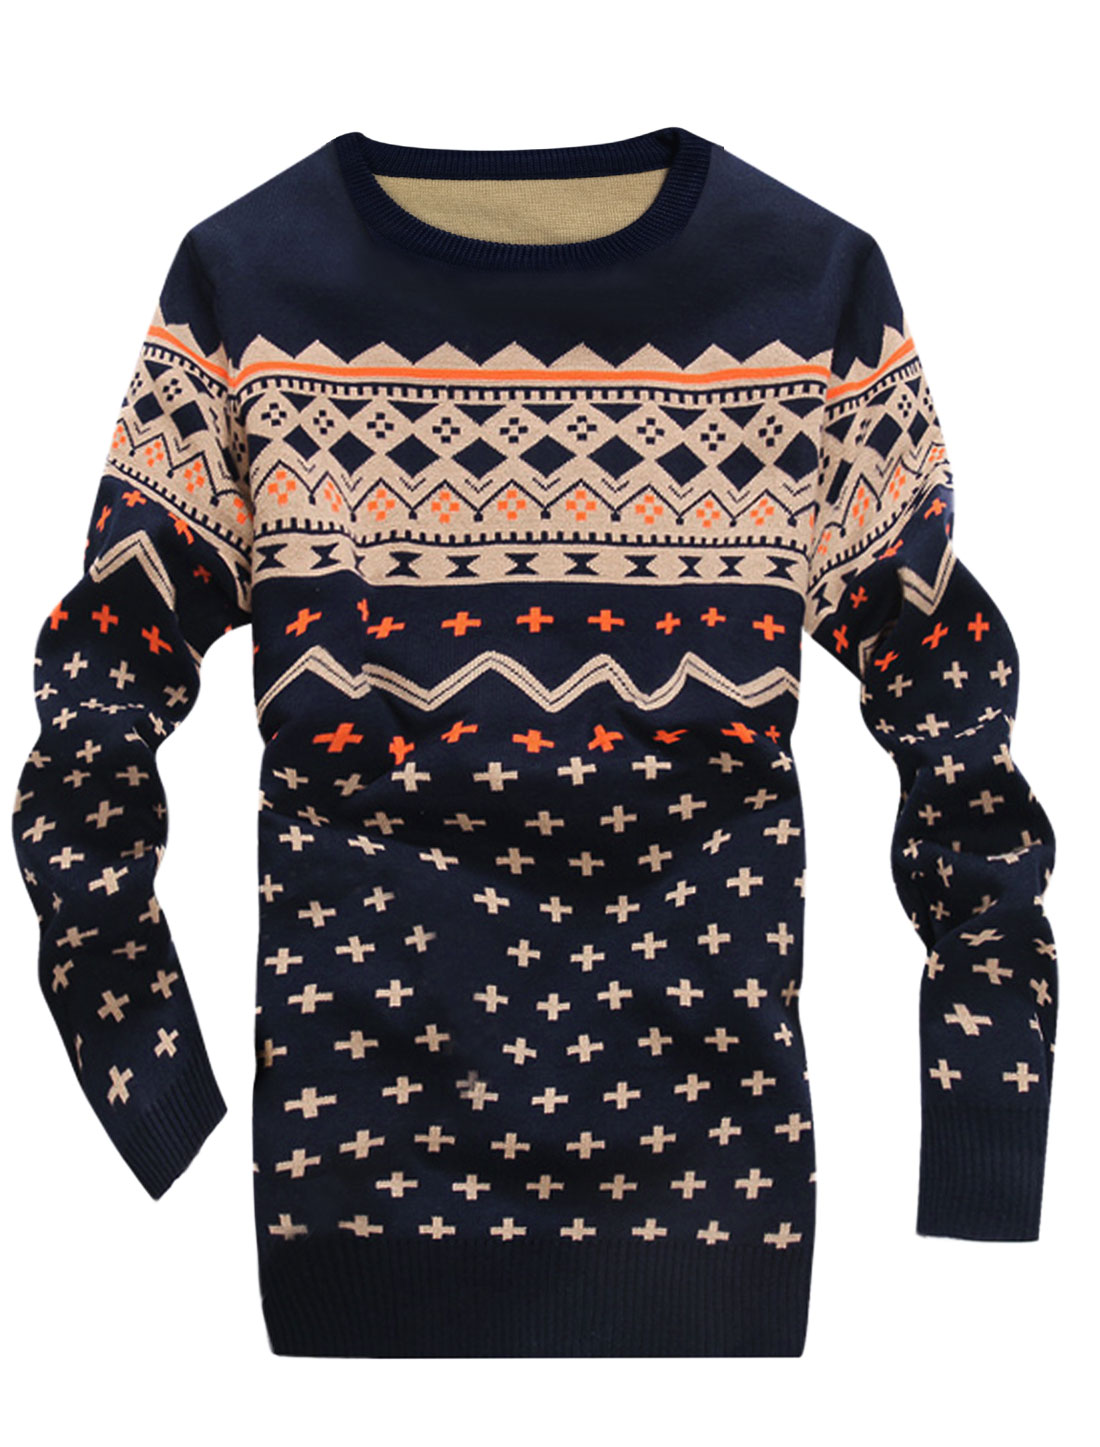 Man Zig-zag Pattern Pullover Slim Fit Navy Blue Sweater S